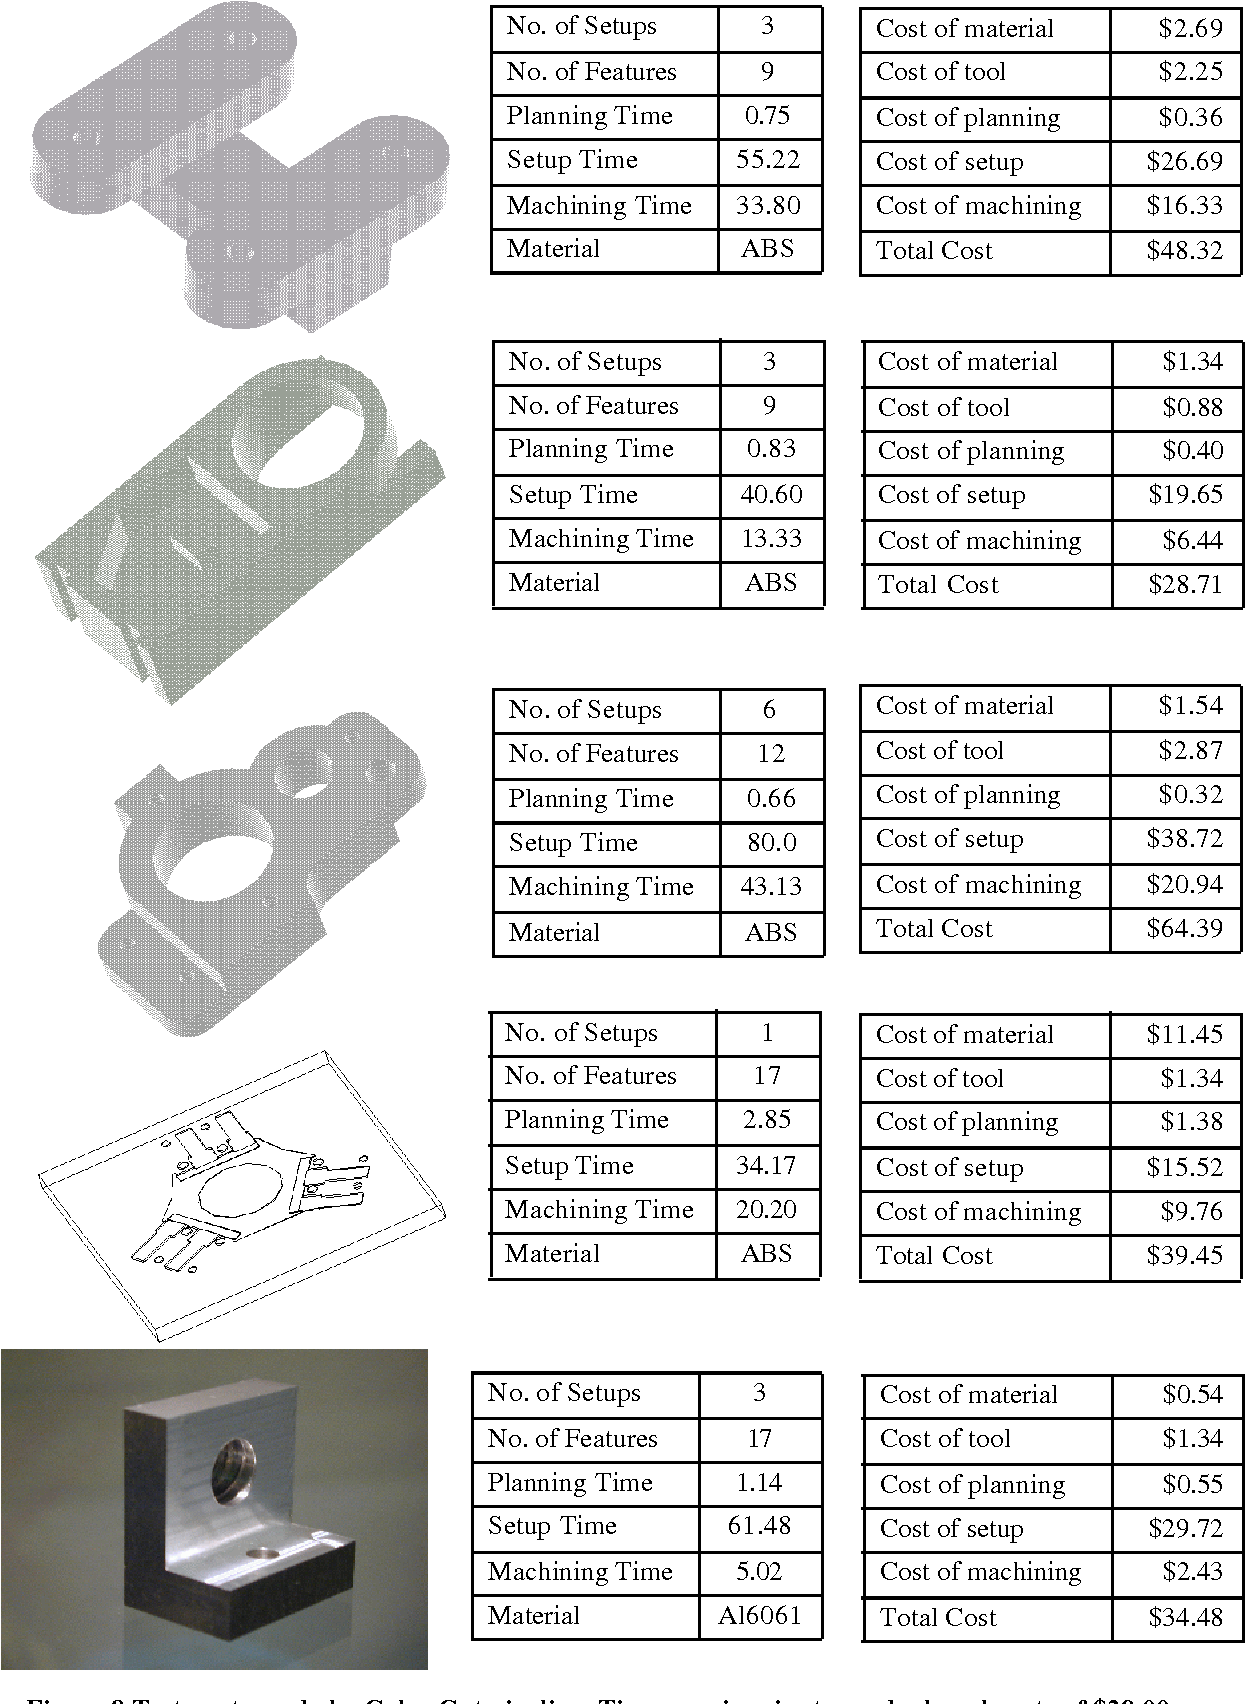 Figure 8 Test parts made by CyberCut pipeline. Times are in minutes and a hourly rate of $29.00 was used for cost calculation.